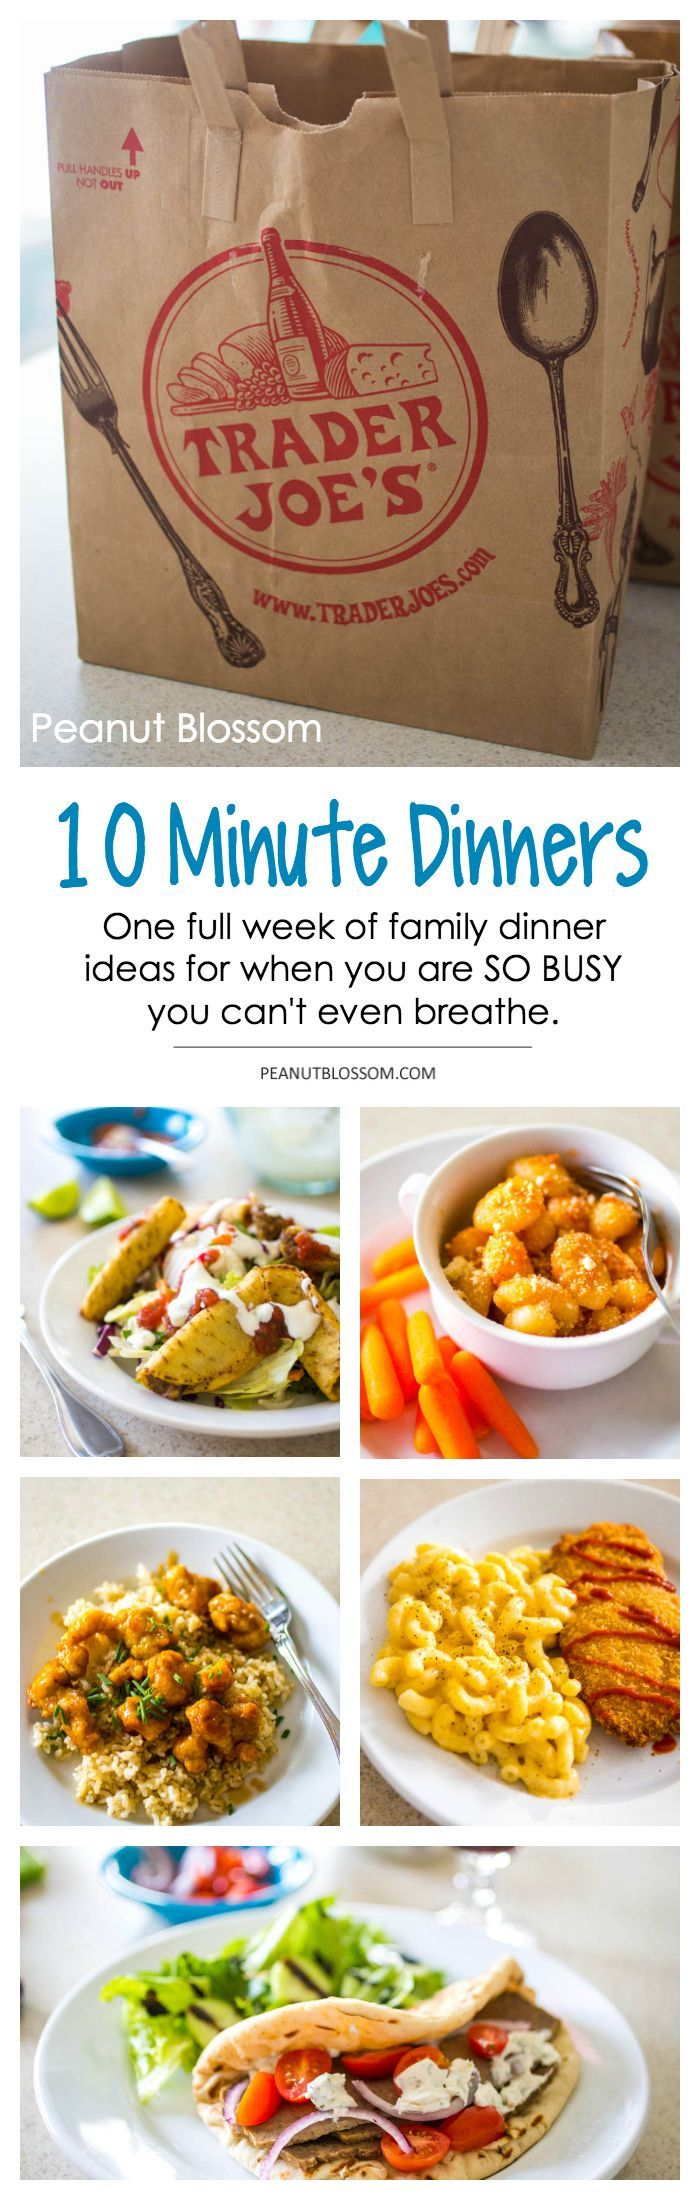 One week meal plan using awesome finds from Trader Joe's! These 10 minute dinners are perfect for super busy weeknights and help you get a meal on the table in a pinch. What a parenting life saver.